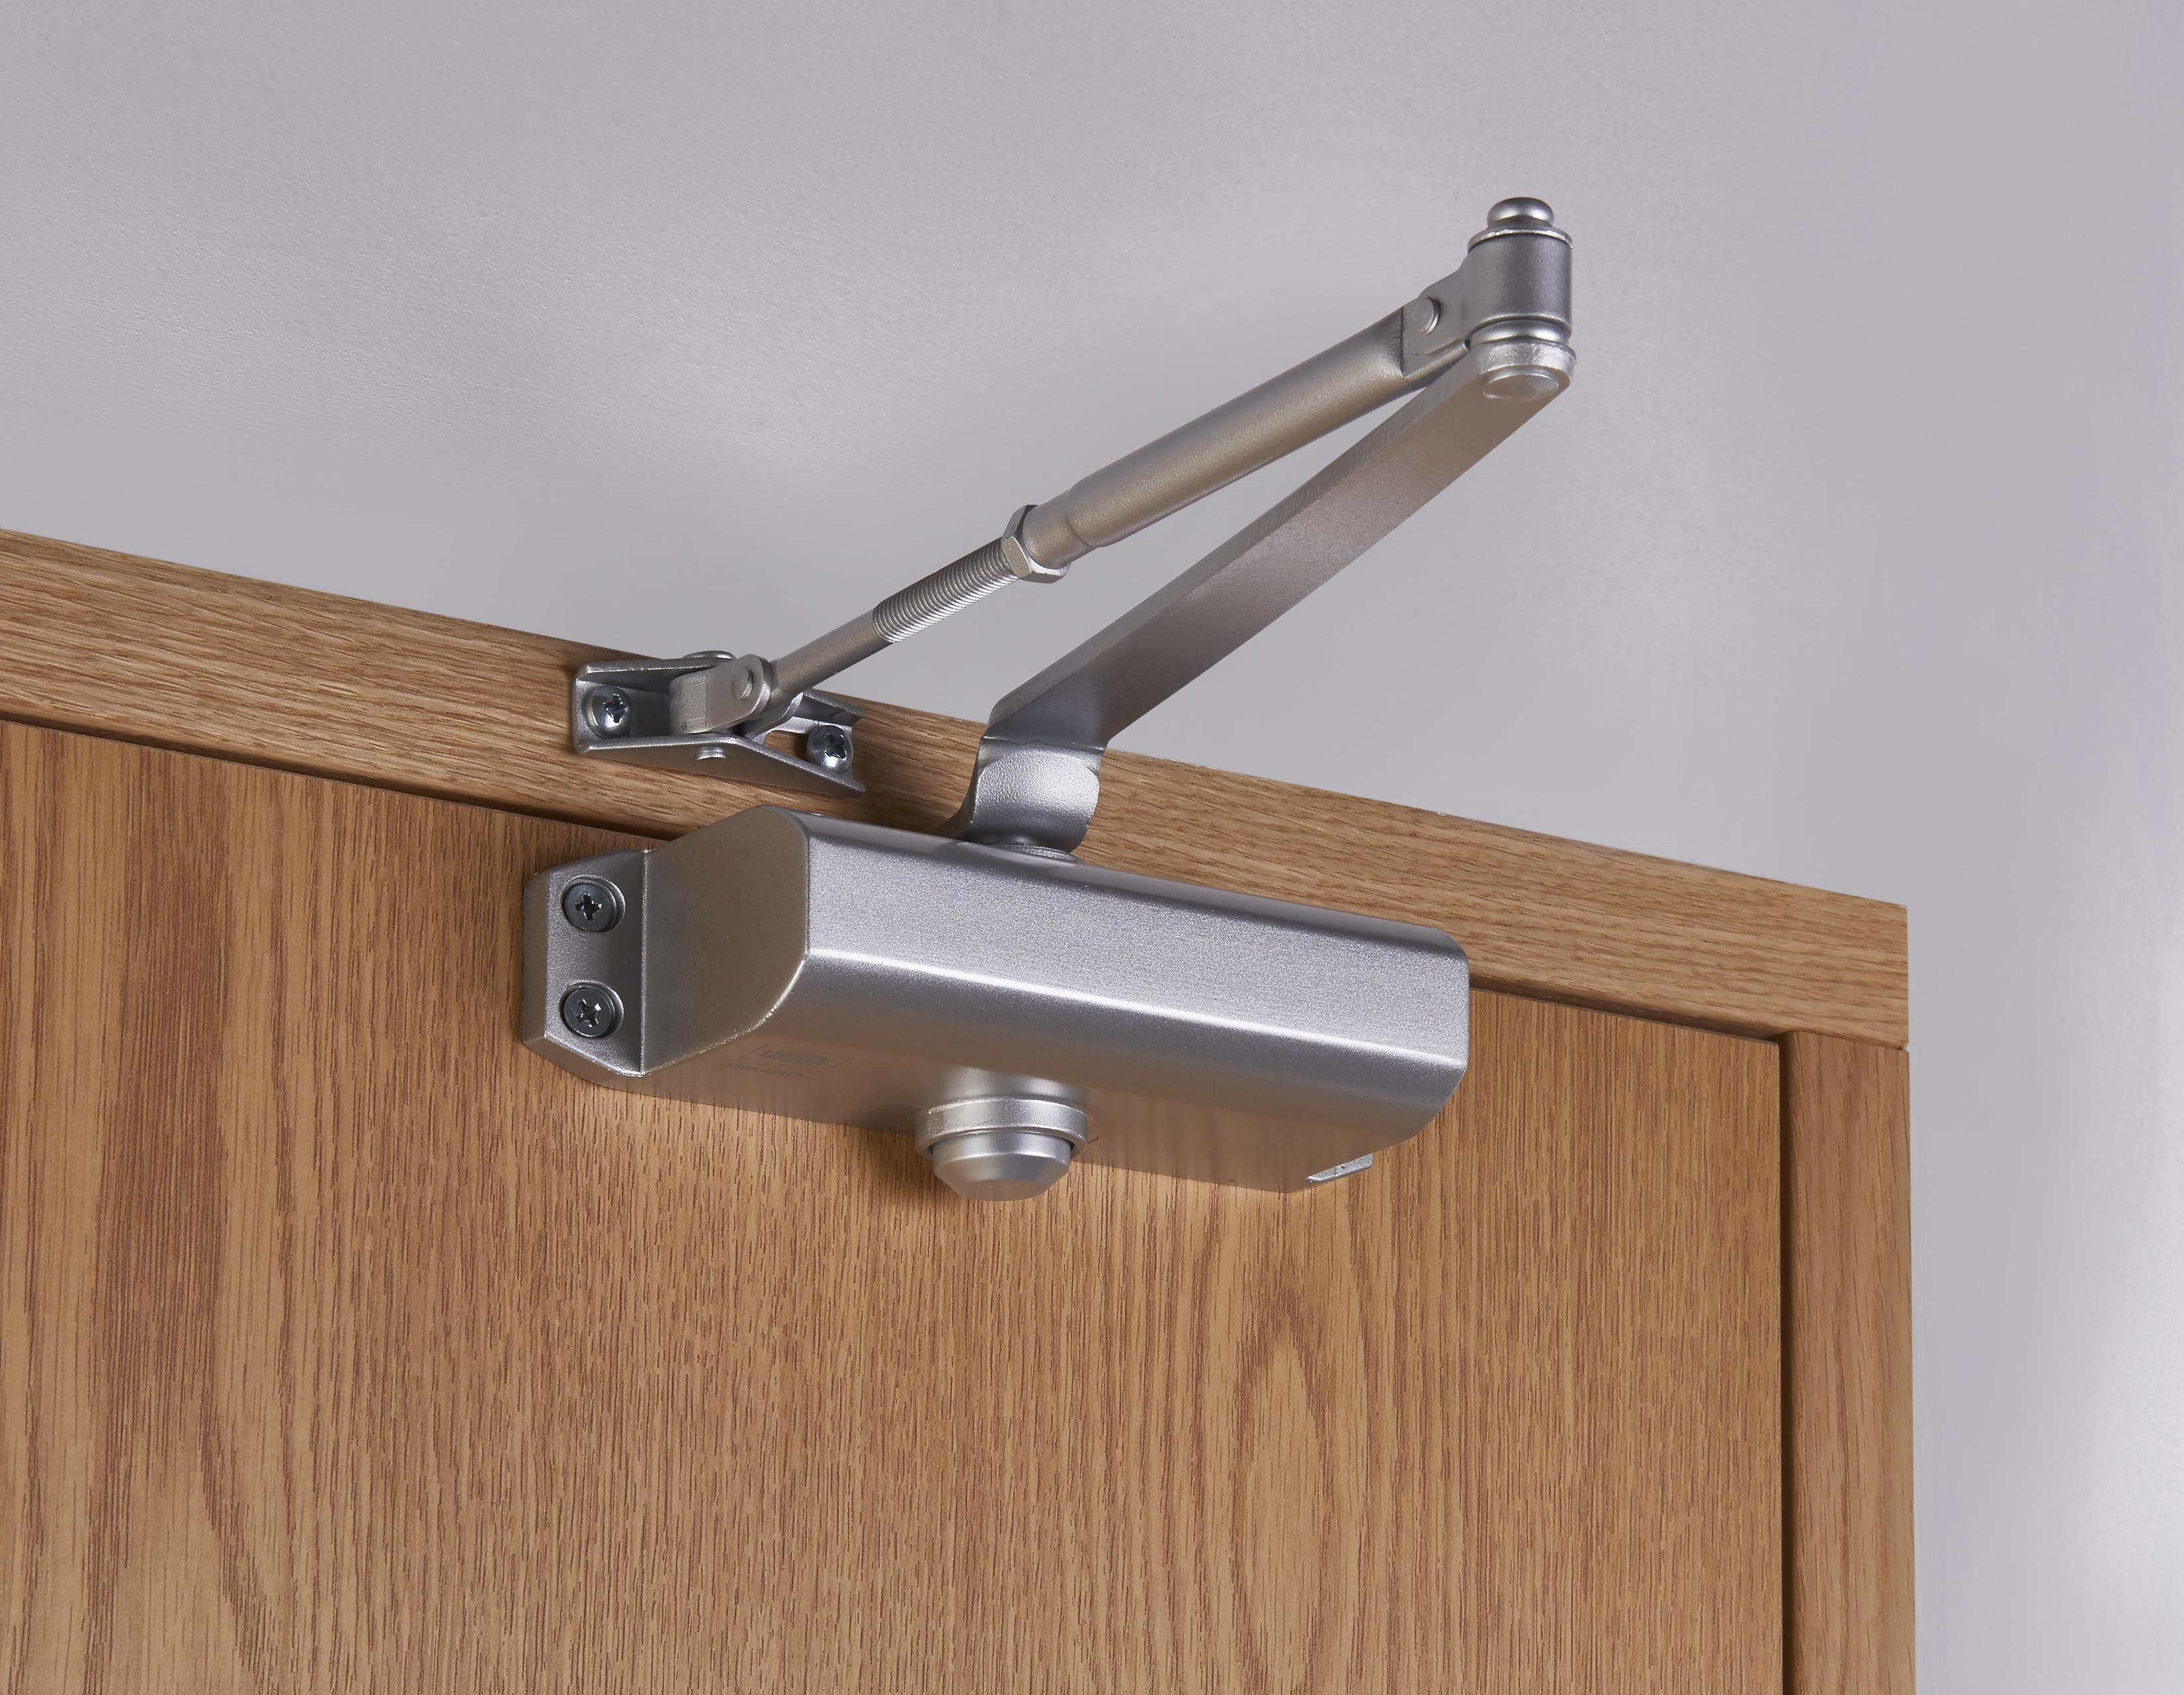 NC8803 (CE3F) - Fixed Size 3 Rack & Pinion Door Closer